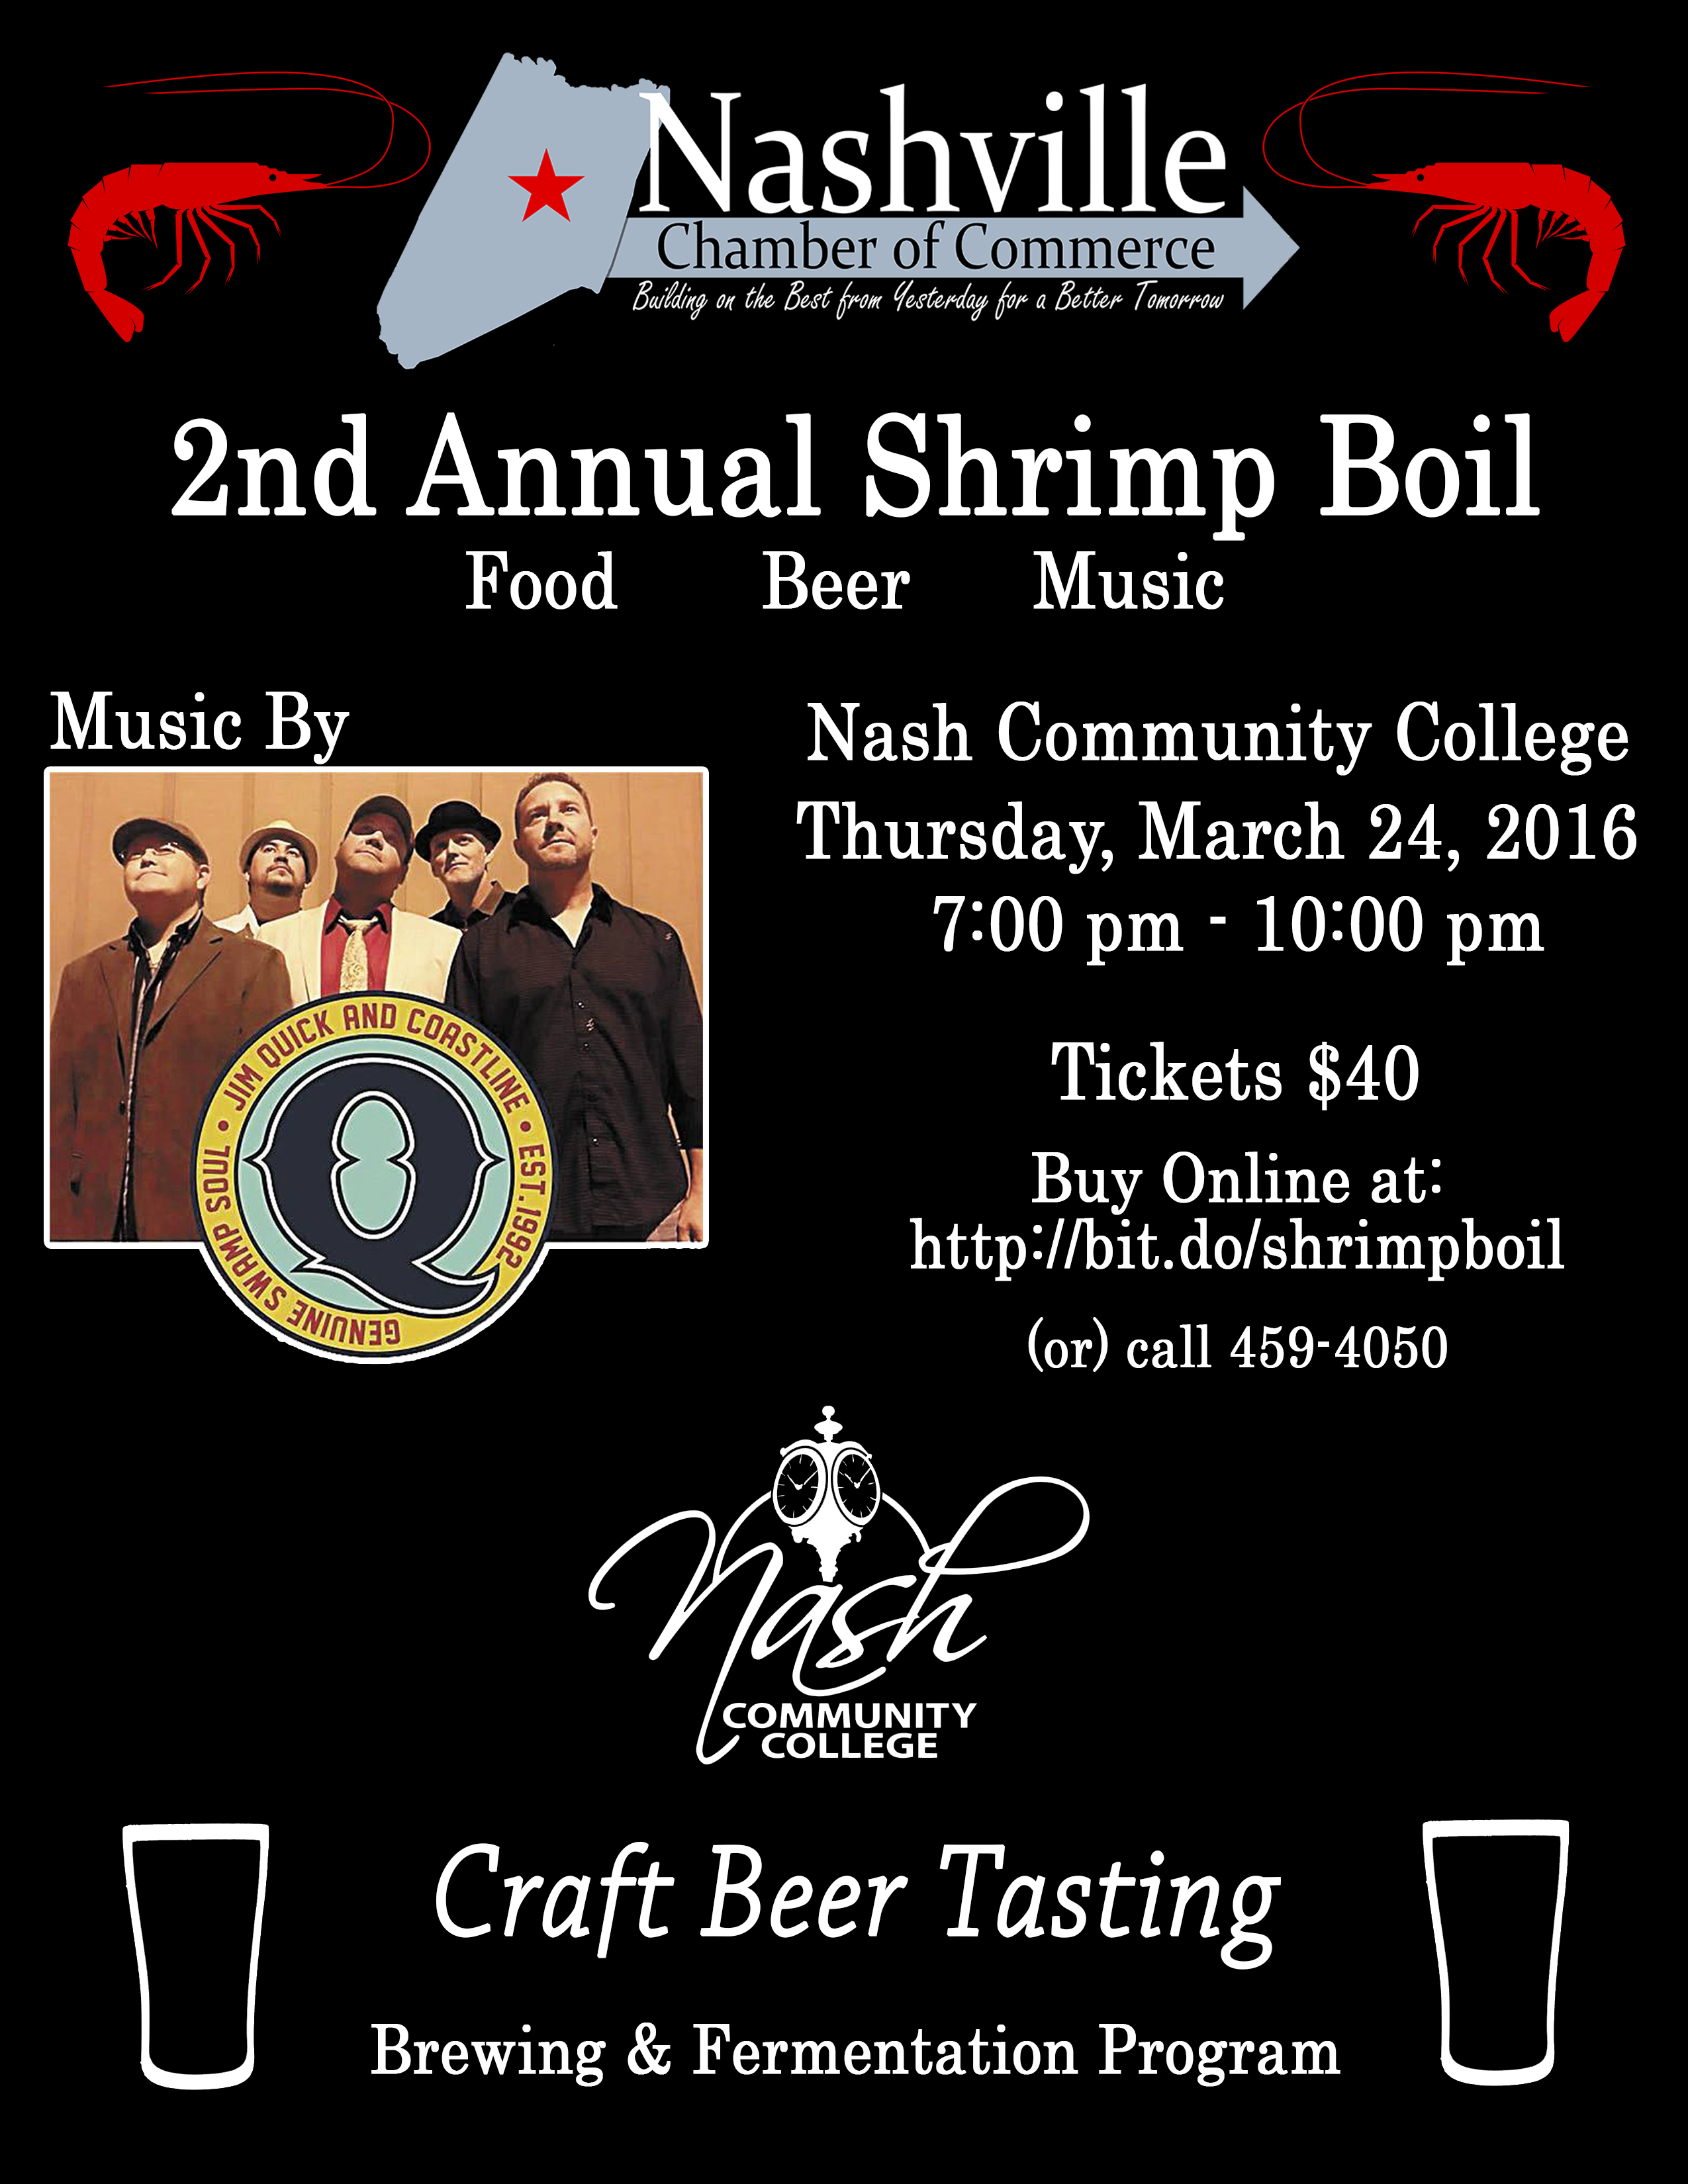 2016 Shrimp Boil Flyer. Source: Nashville Chamber of Commerce, Nashville NC.